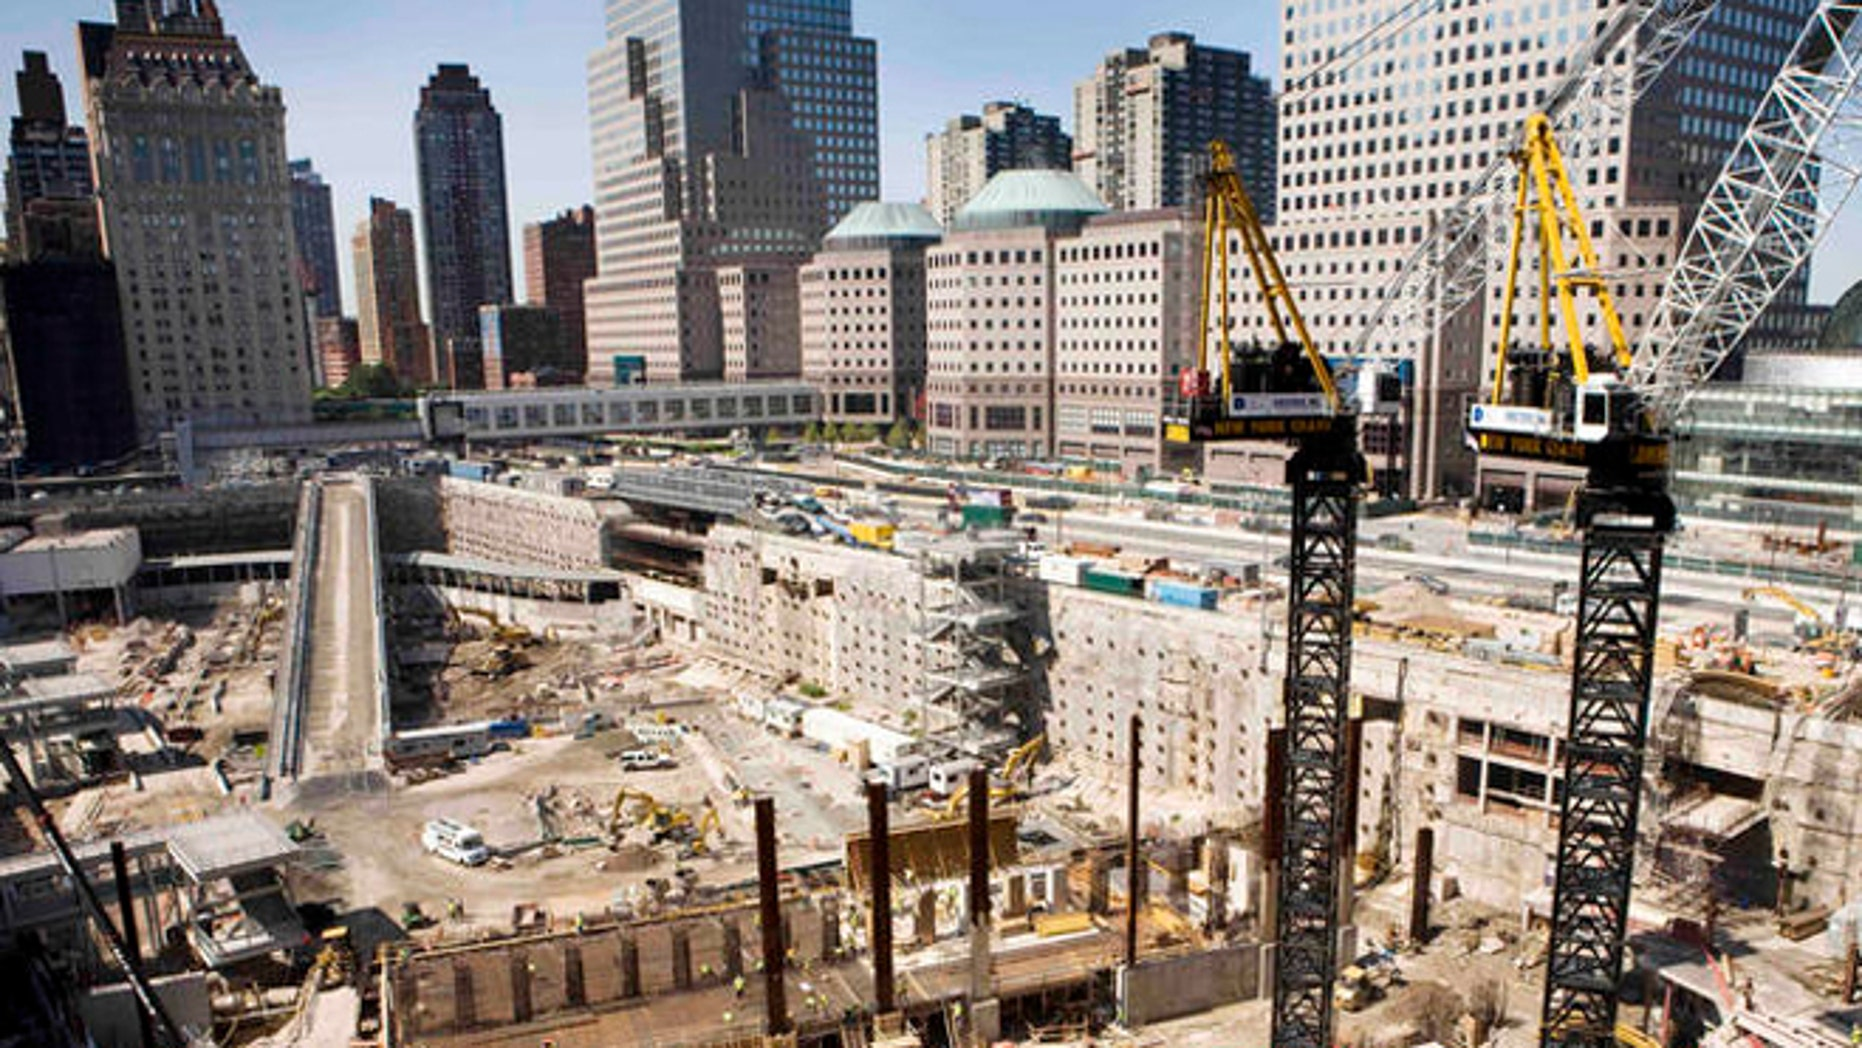 This 2007 file photo shows construction at the World Trade Center site in New York.